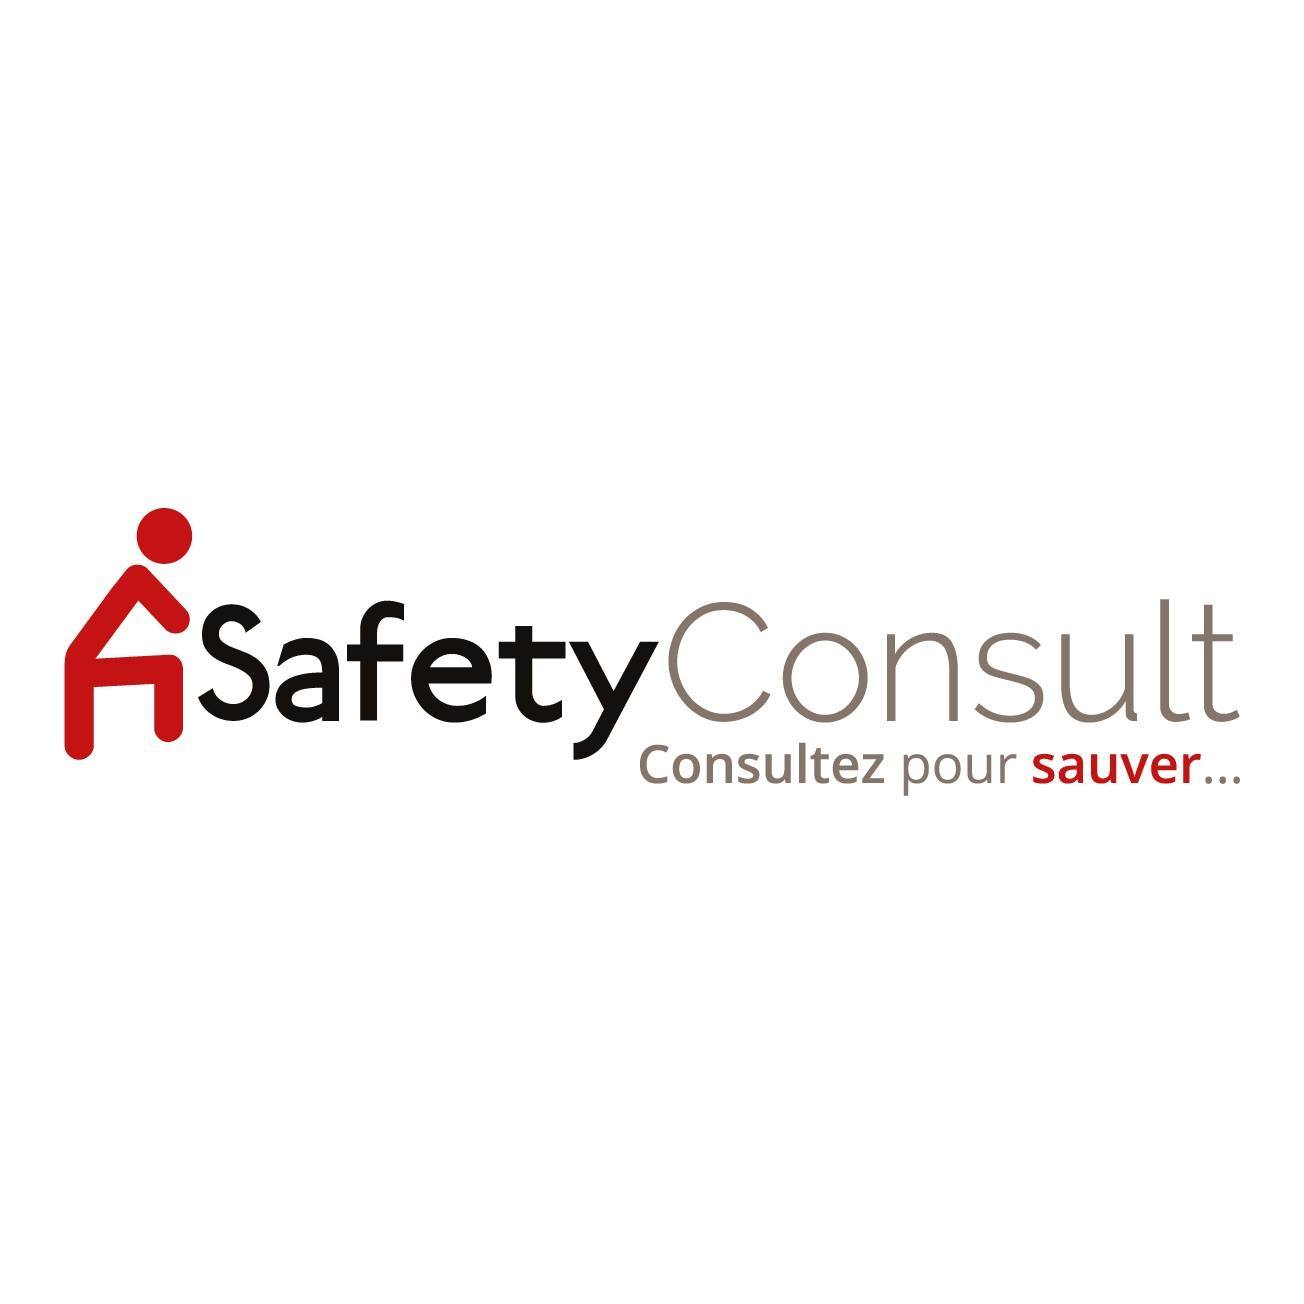 safety consult